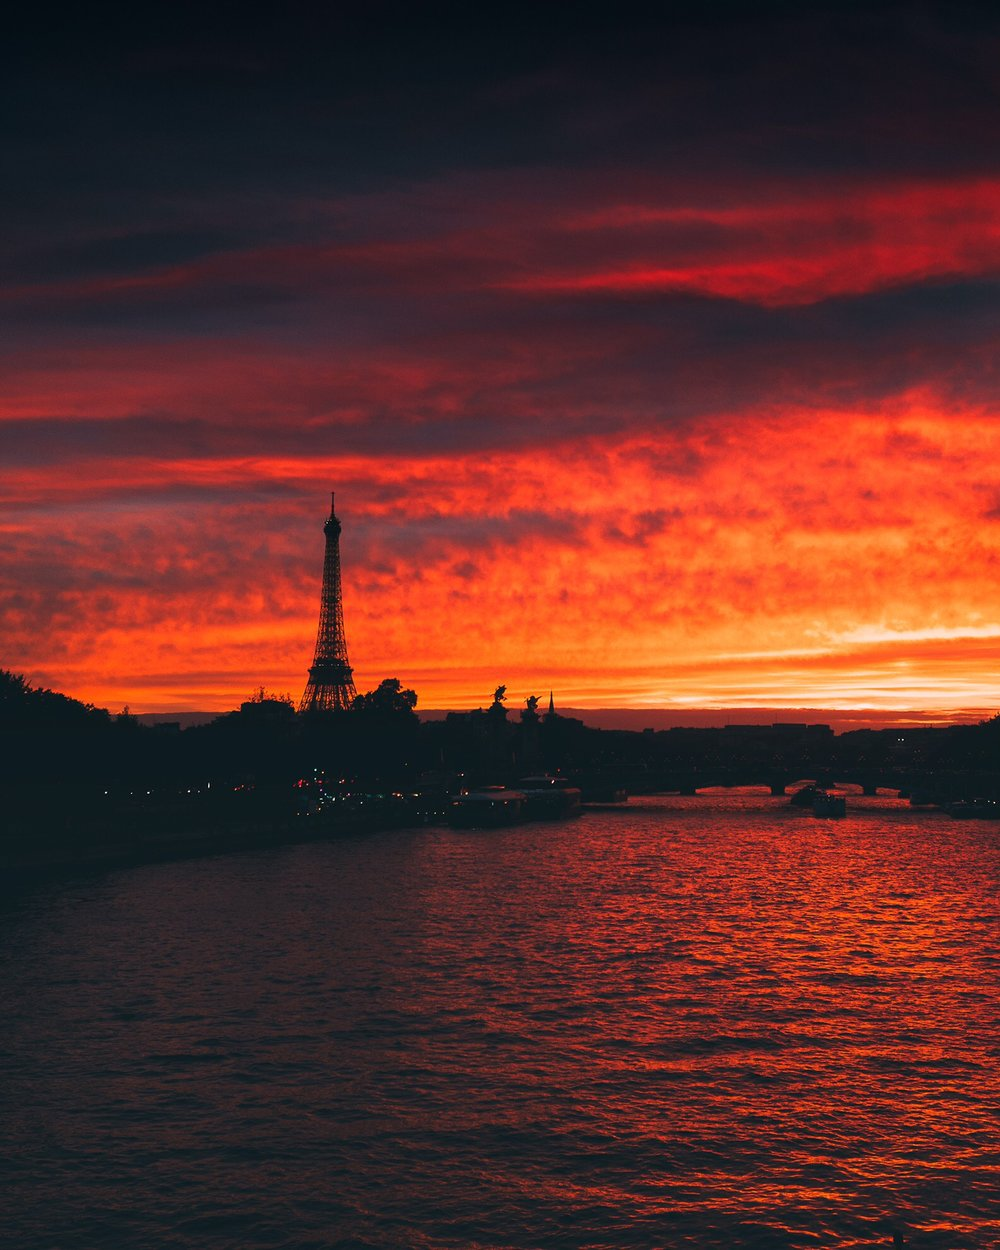 Incredible sunset yesterday during my  #DxOOneTrip  in Paris, shoot with the  @dxoone camera